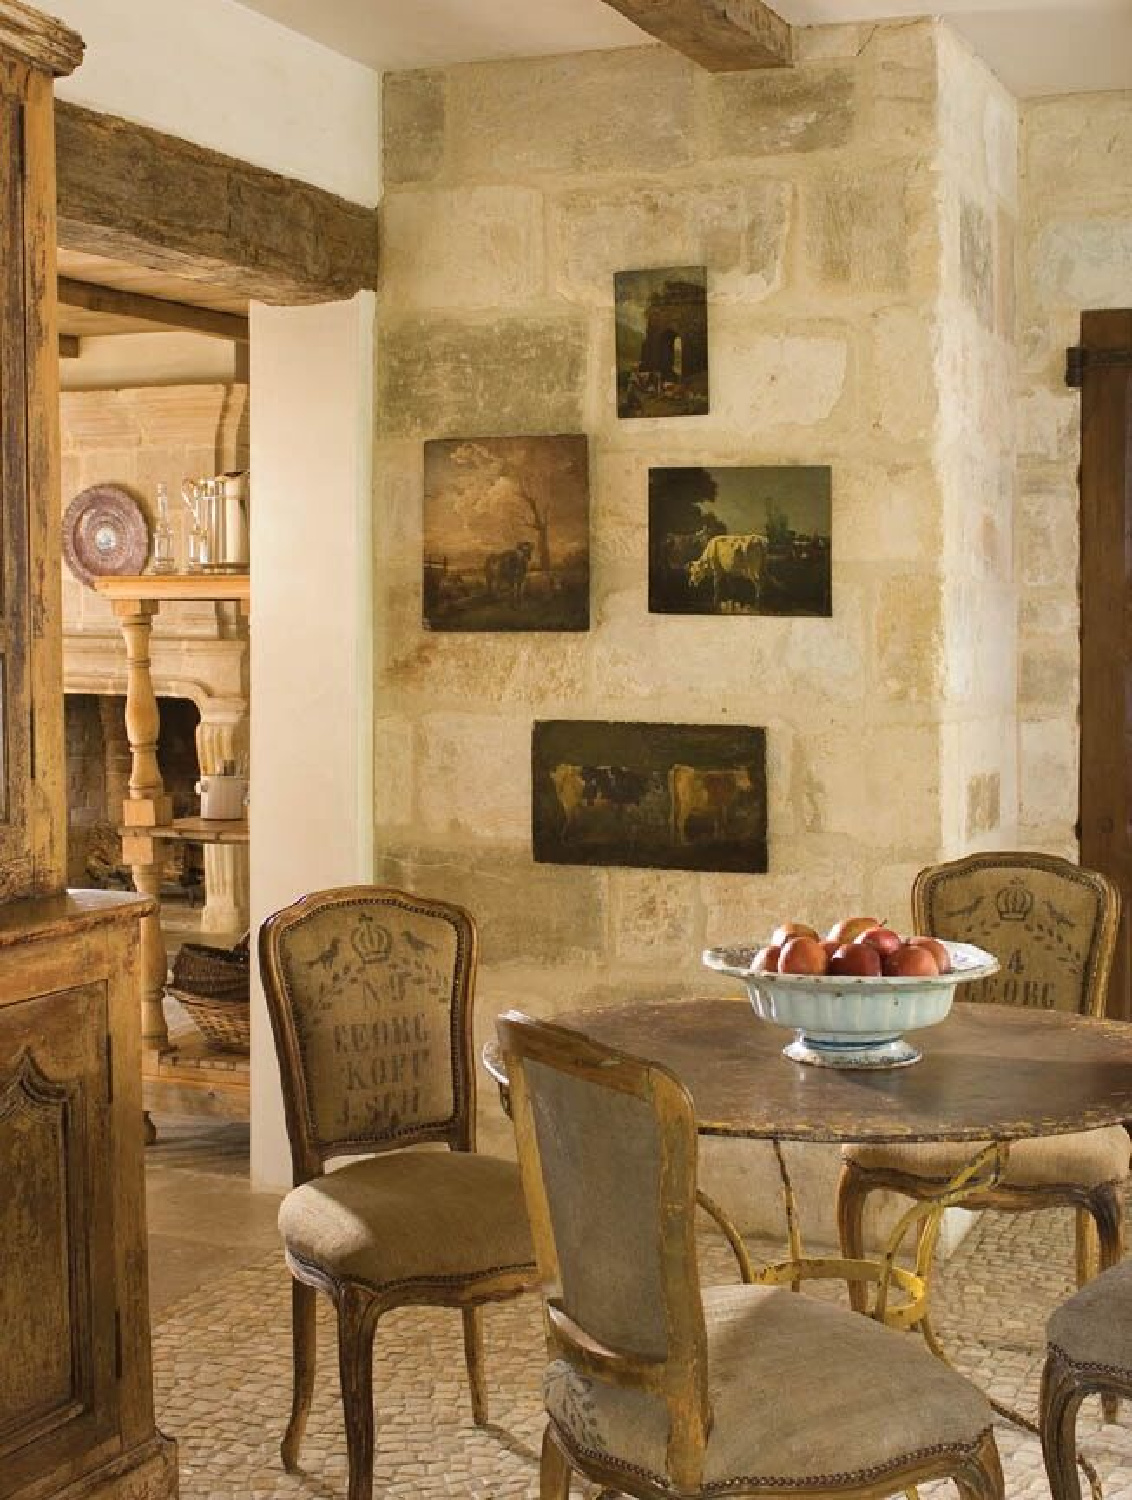 French farmhouse dining room by Pamela Pierce for Ruth Gay of Chateau Domingue. Come score ideas for a Timeless and Tranquil European Country Inspired Look. #europeancountry #interiordesign #frenchcountry